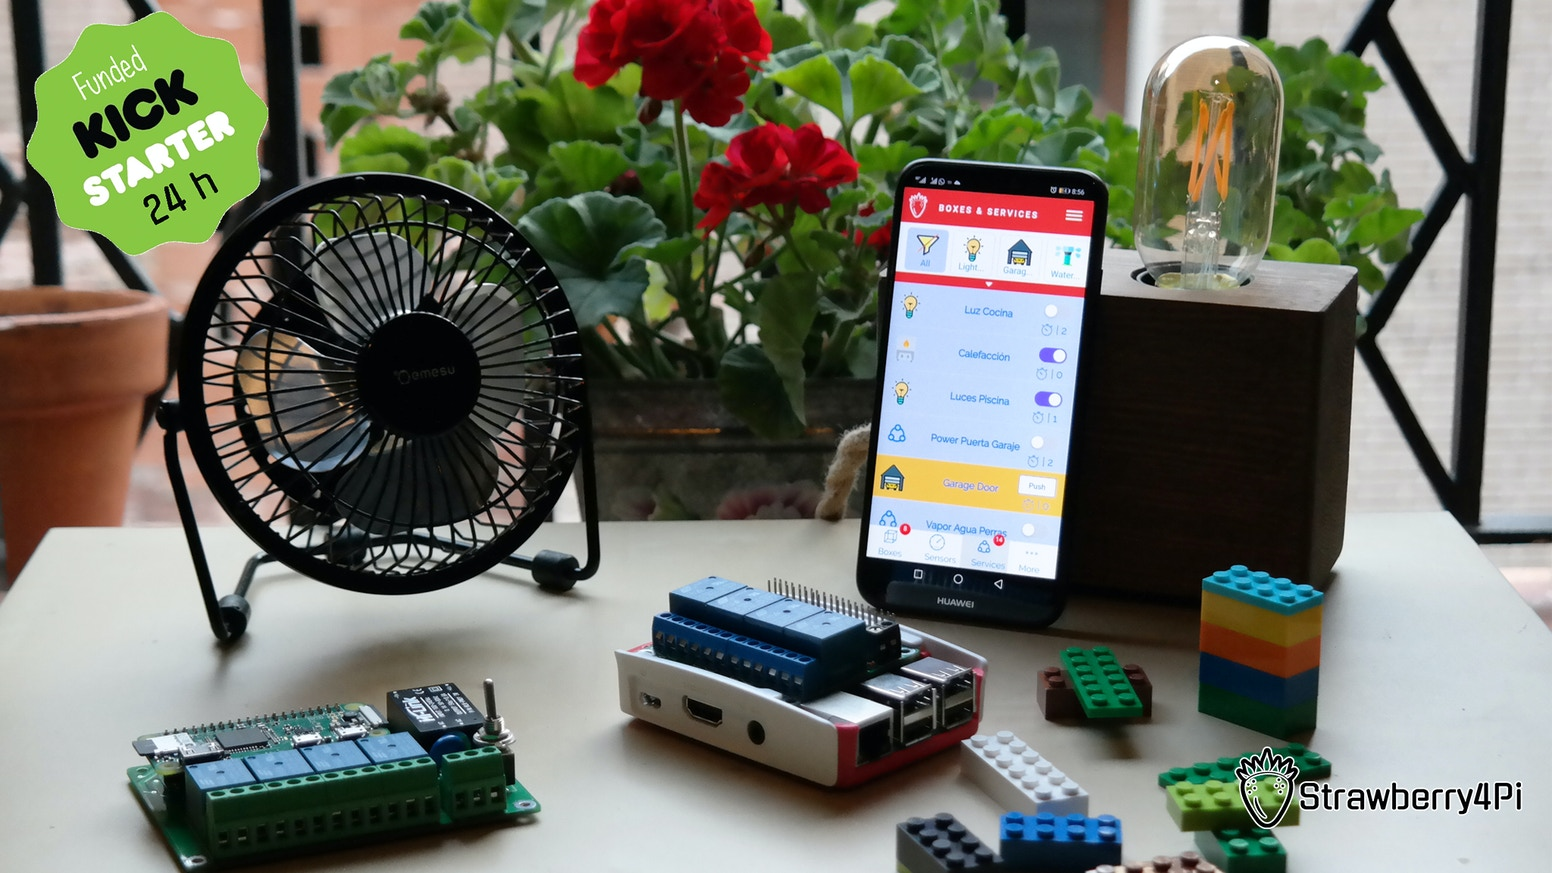 Strawberry4Pi 2: Hardware and Software for Raspberry Pi by